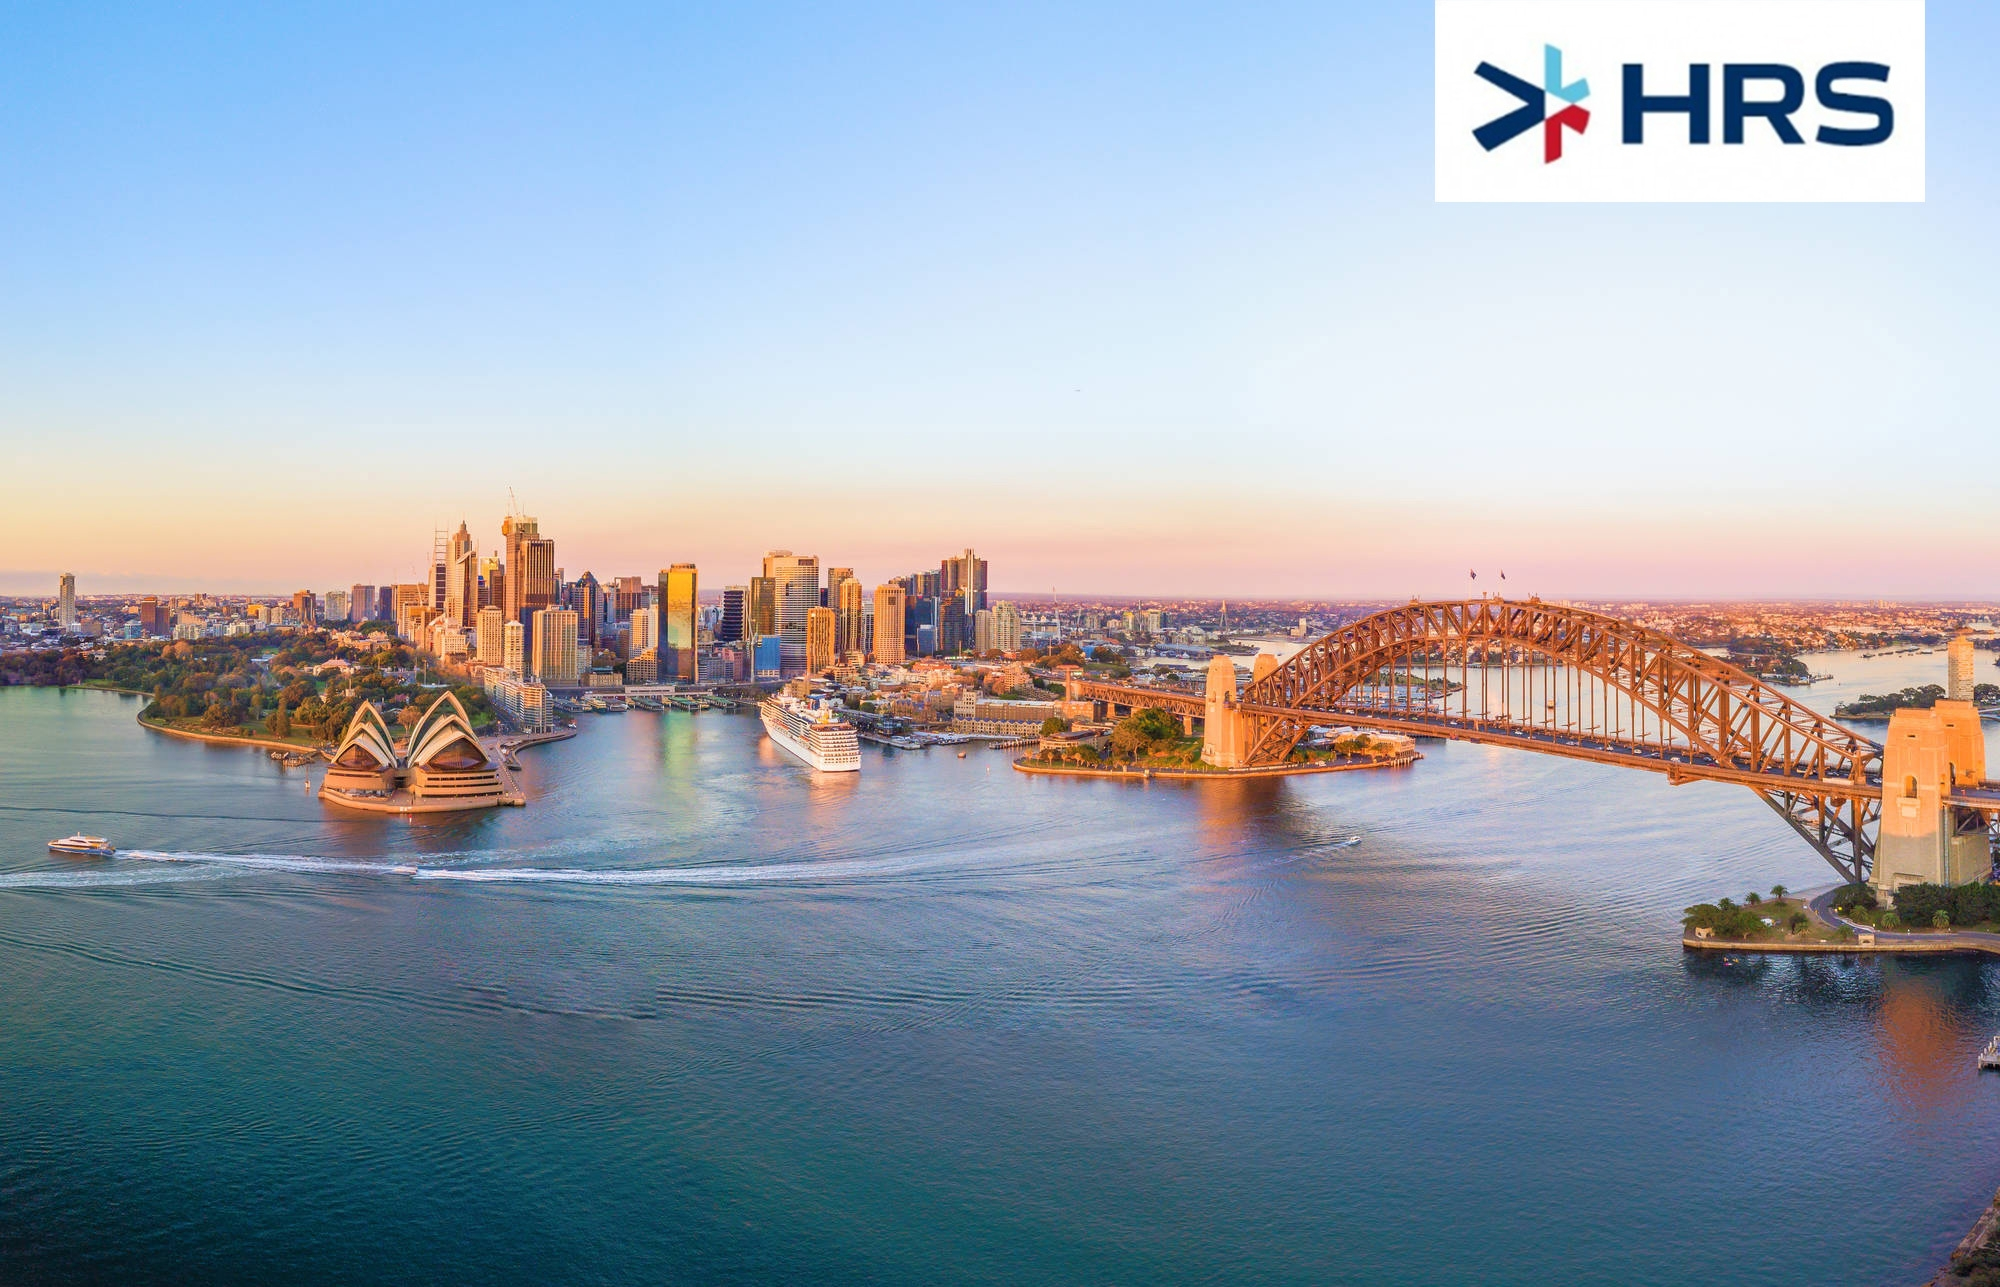 hrs completes merger with the lido group in australianew australia city company number